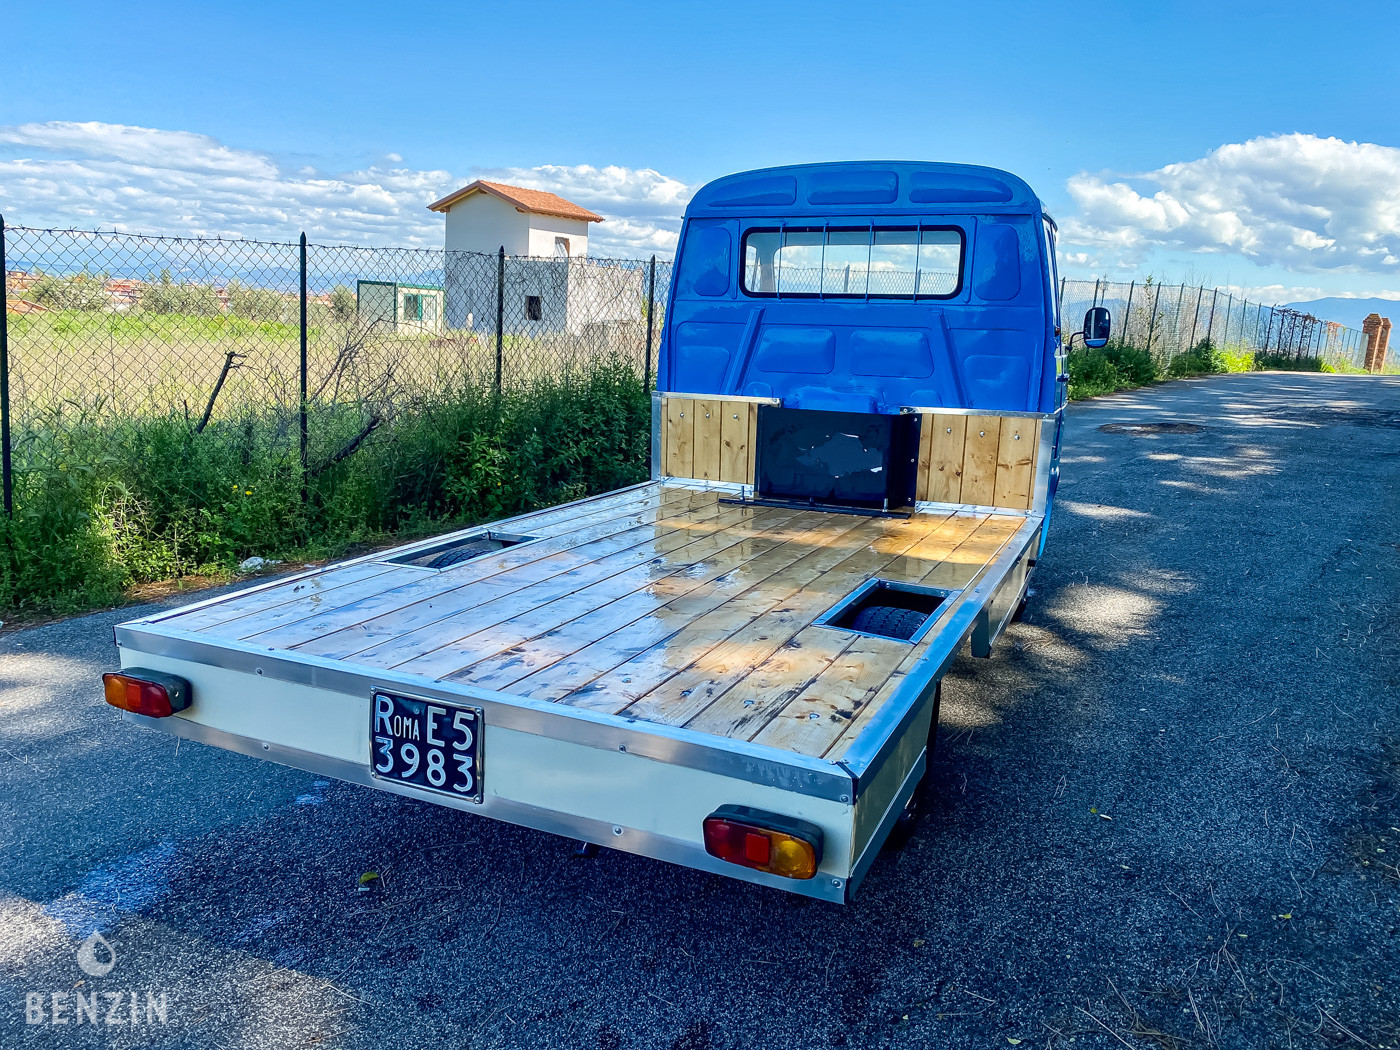 Fiat 421 Pick up a vendre/ Fiat 421 Pick up to sell/ Fiat 421 Pick up verkaufen/ Fiat 421 Pick up en venta